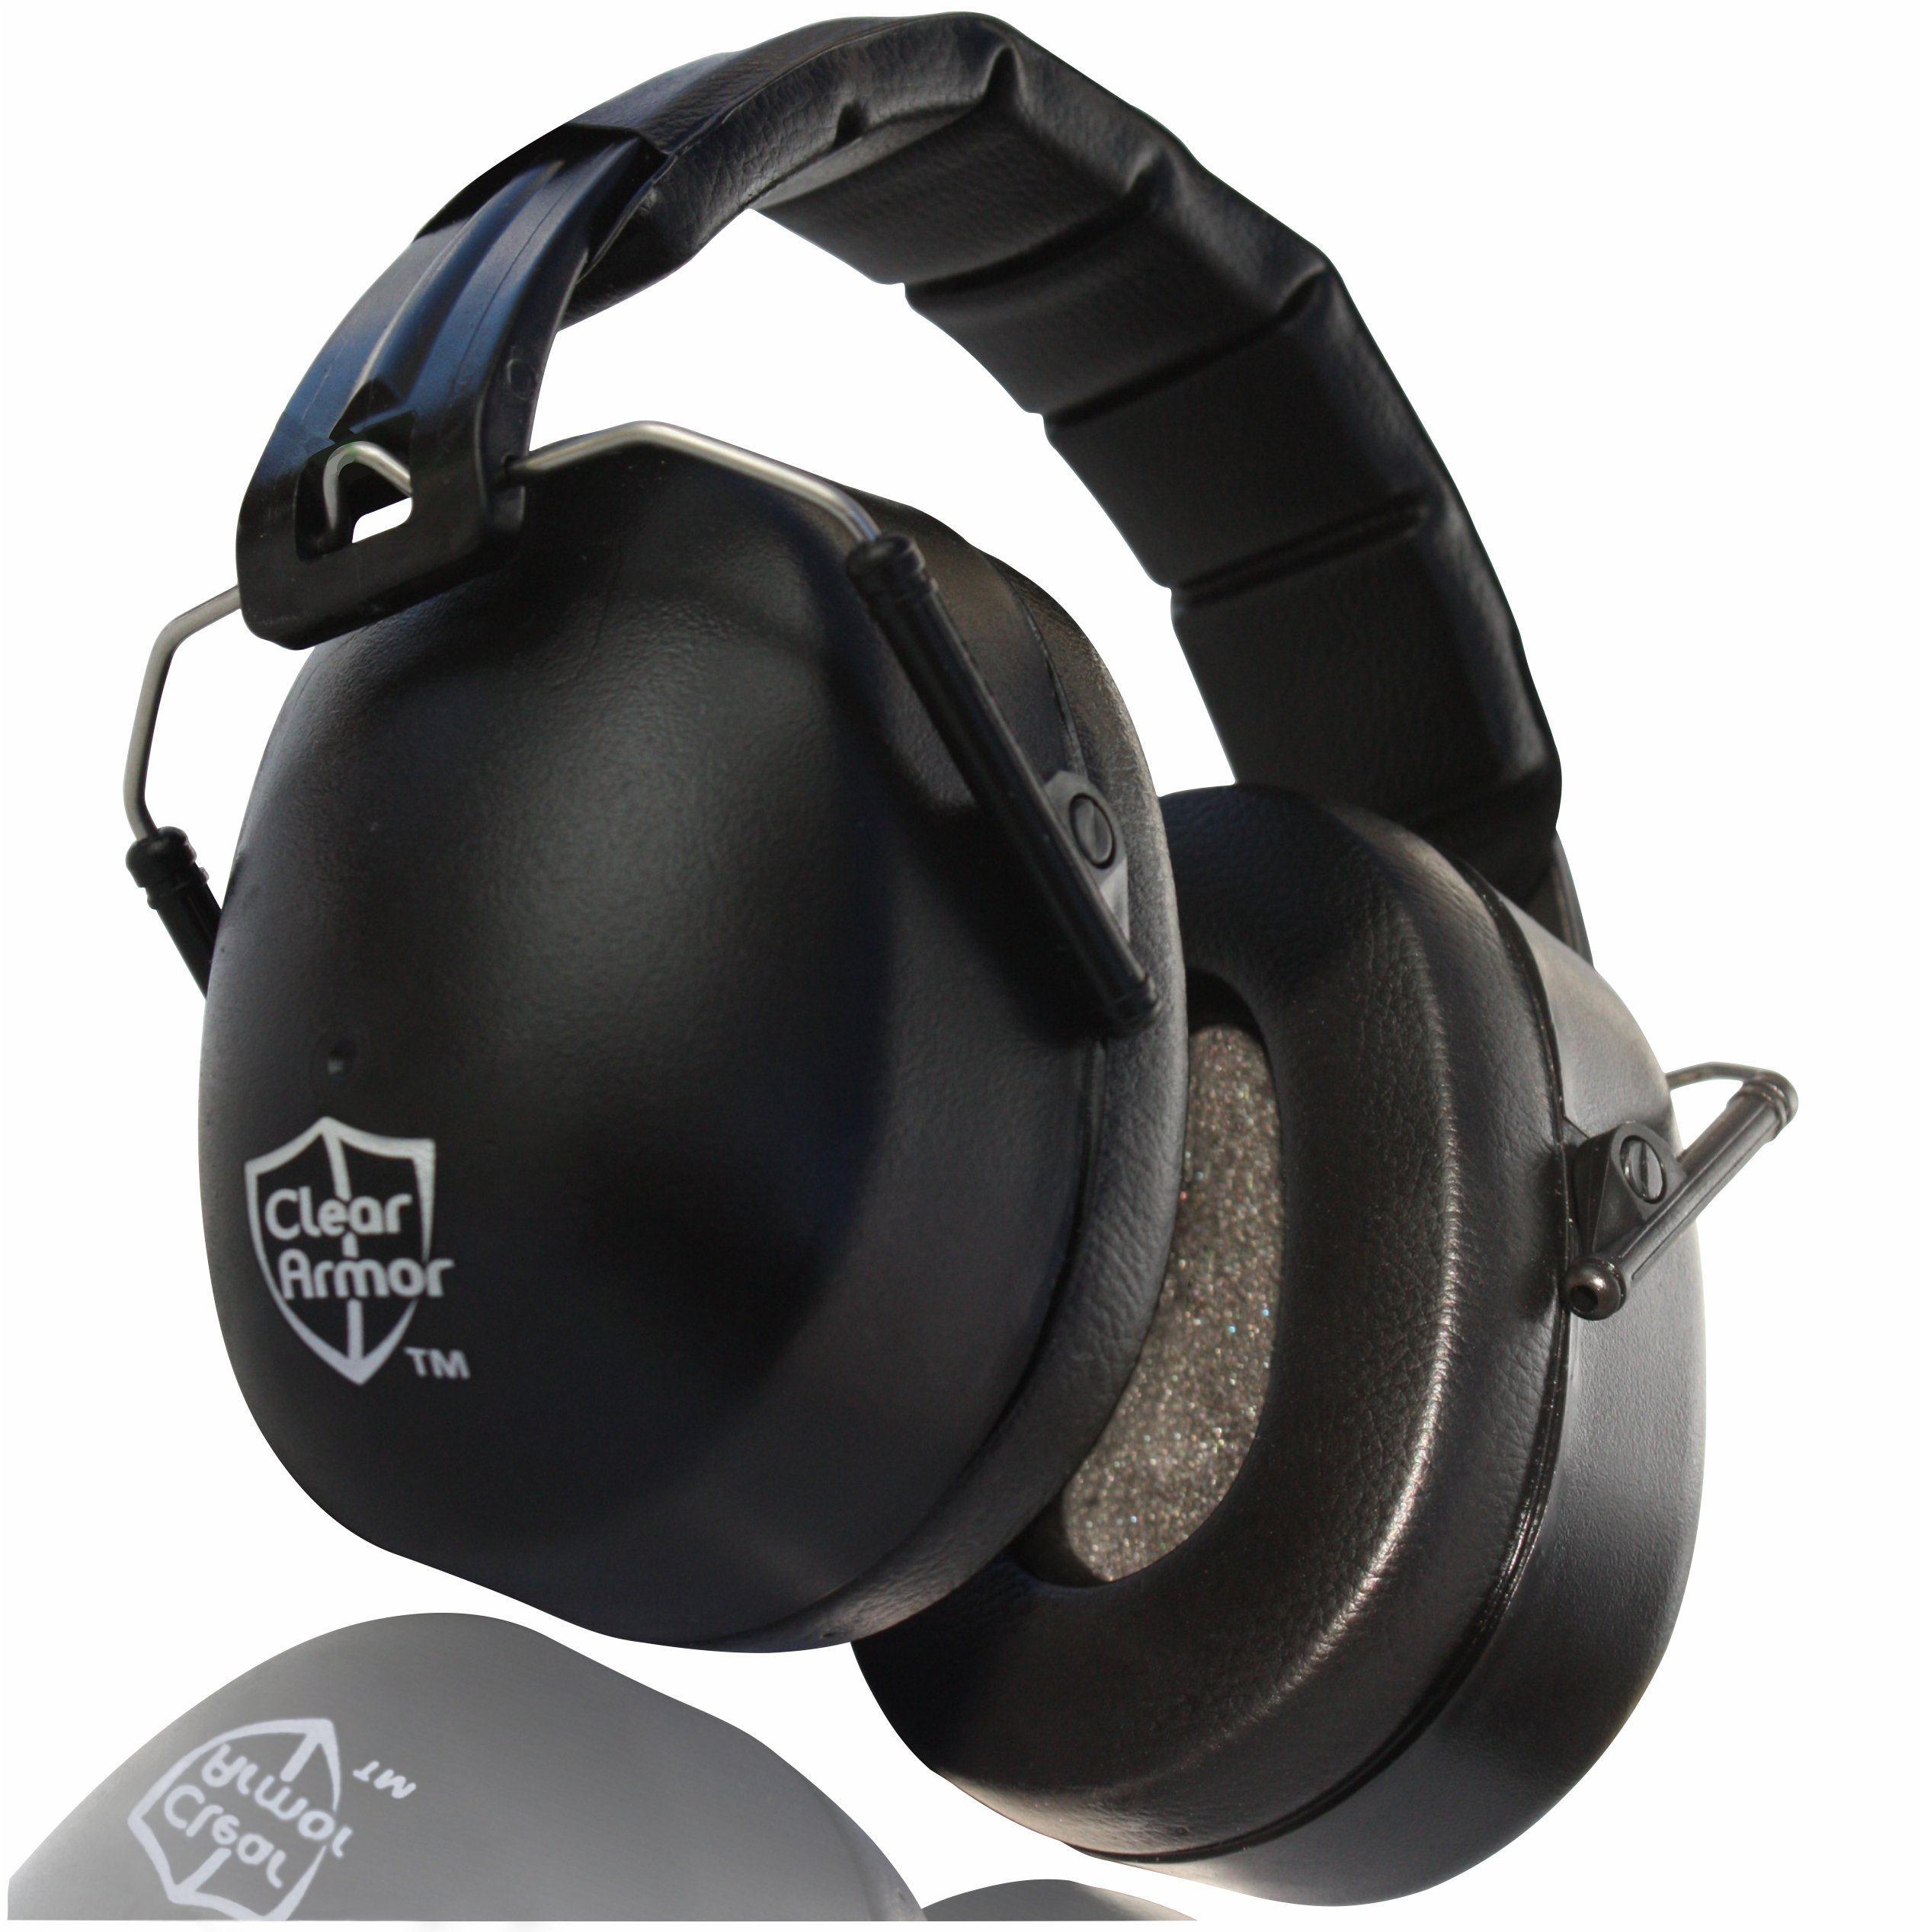 ClearArmor 141001 Shooters Hearing Protection Safety Ear Muffs Folding-Padded Head Band Ear Cups, Black by ClearArmor (Image #2)